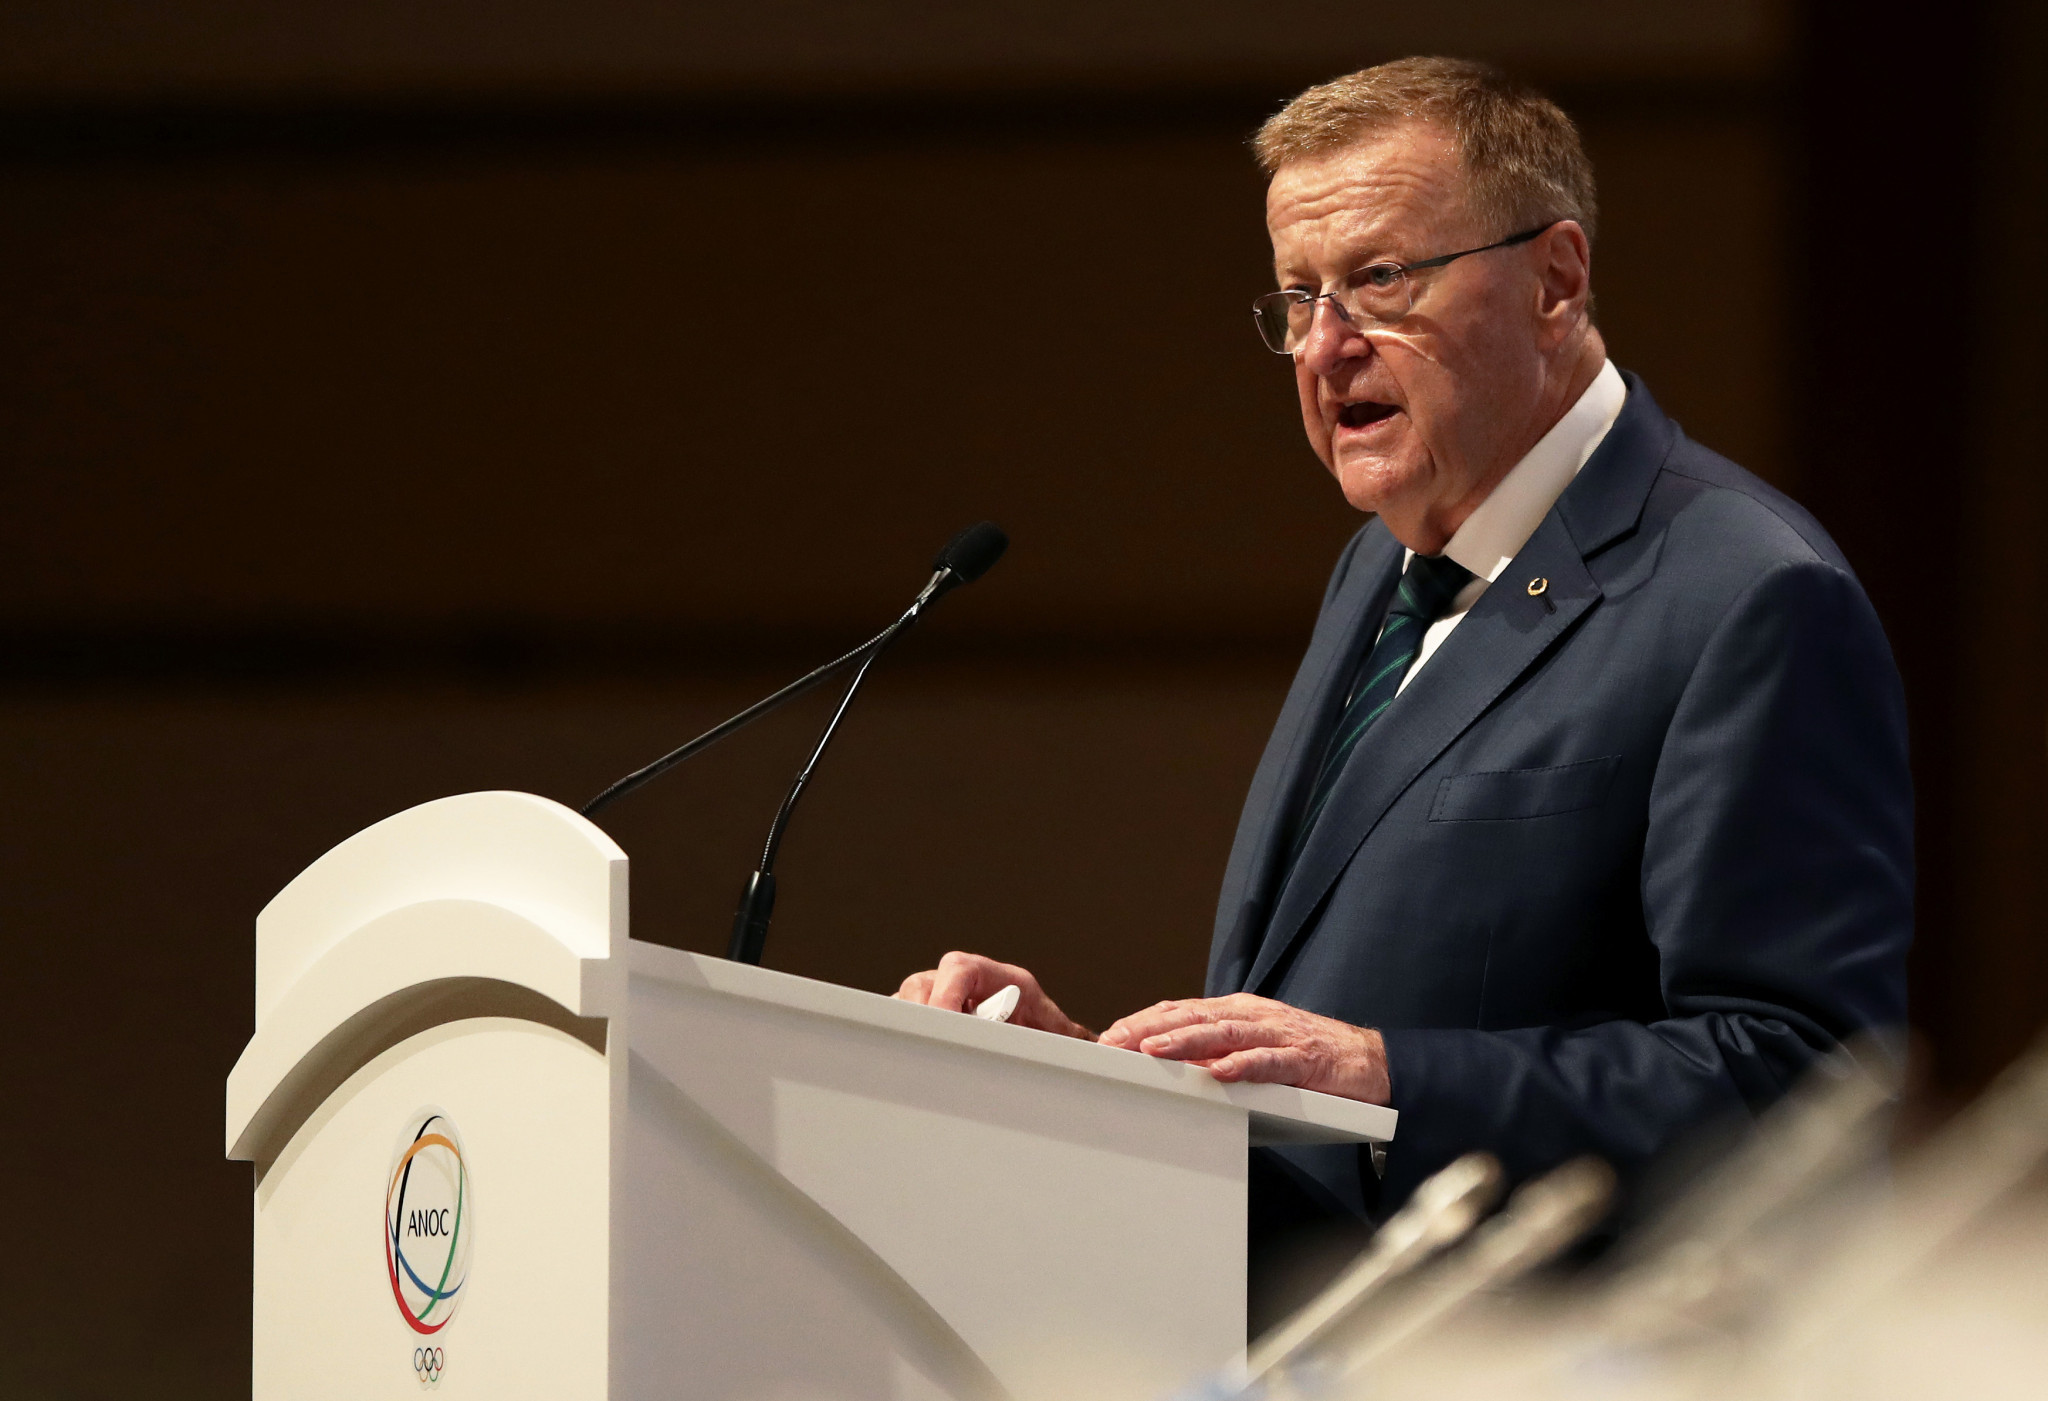 IOC Coordination Commission chair John Coates is set to host the joint steering committee alongside Tokyo 2020 President Yoshirō Mori ©Getty Images